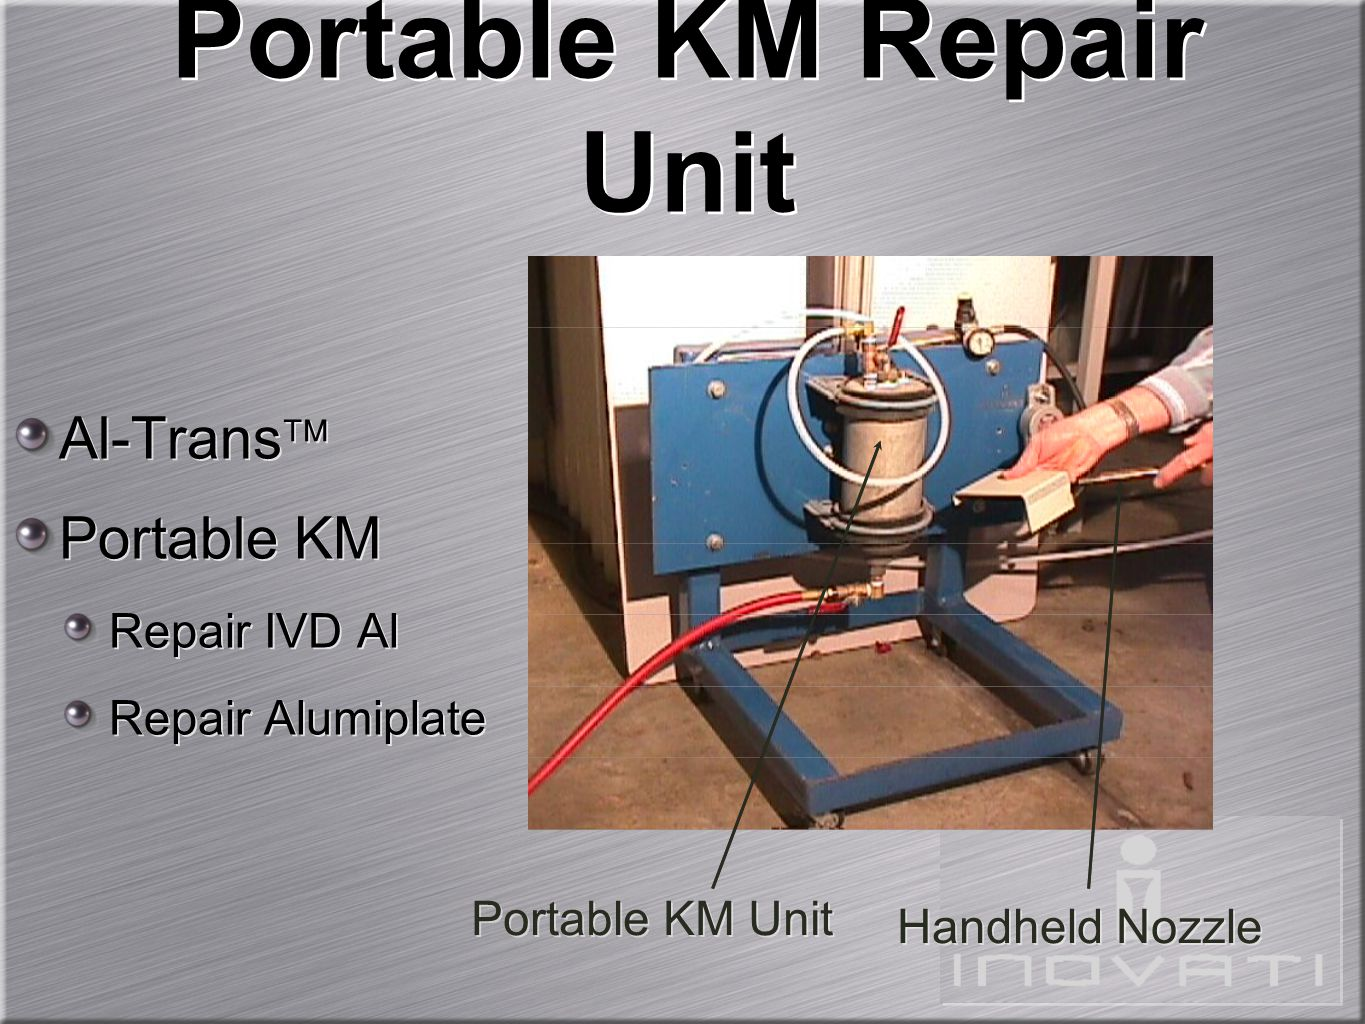 Portable KM Repair Unit Handheld Nozzle Al-Trans  Portable KM Repair IVD Al Repair Alumiplate Al-Trans  Portable KM Repair IVD Al Repair Alumiplate Portable KM Unit